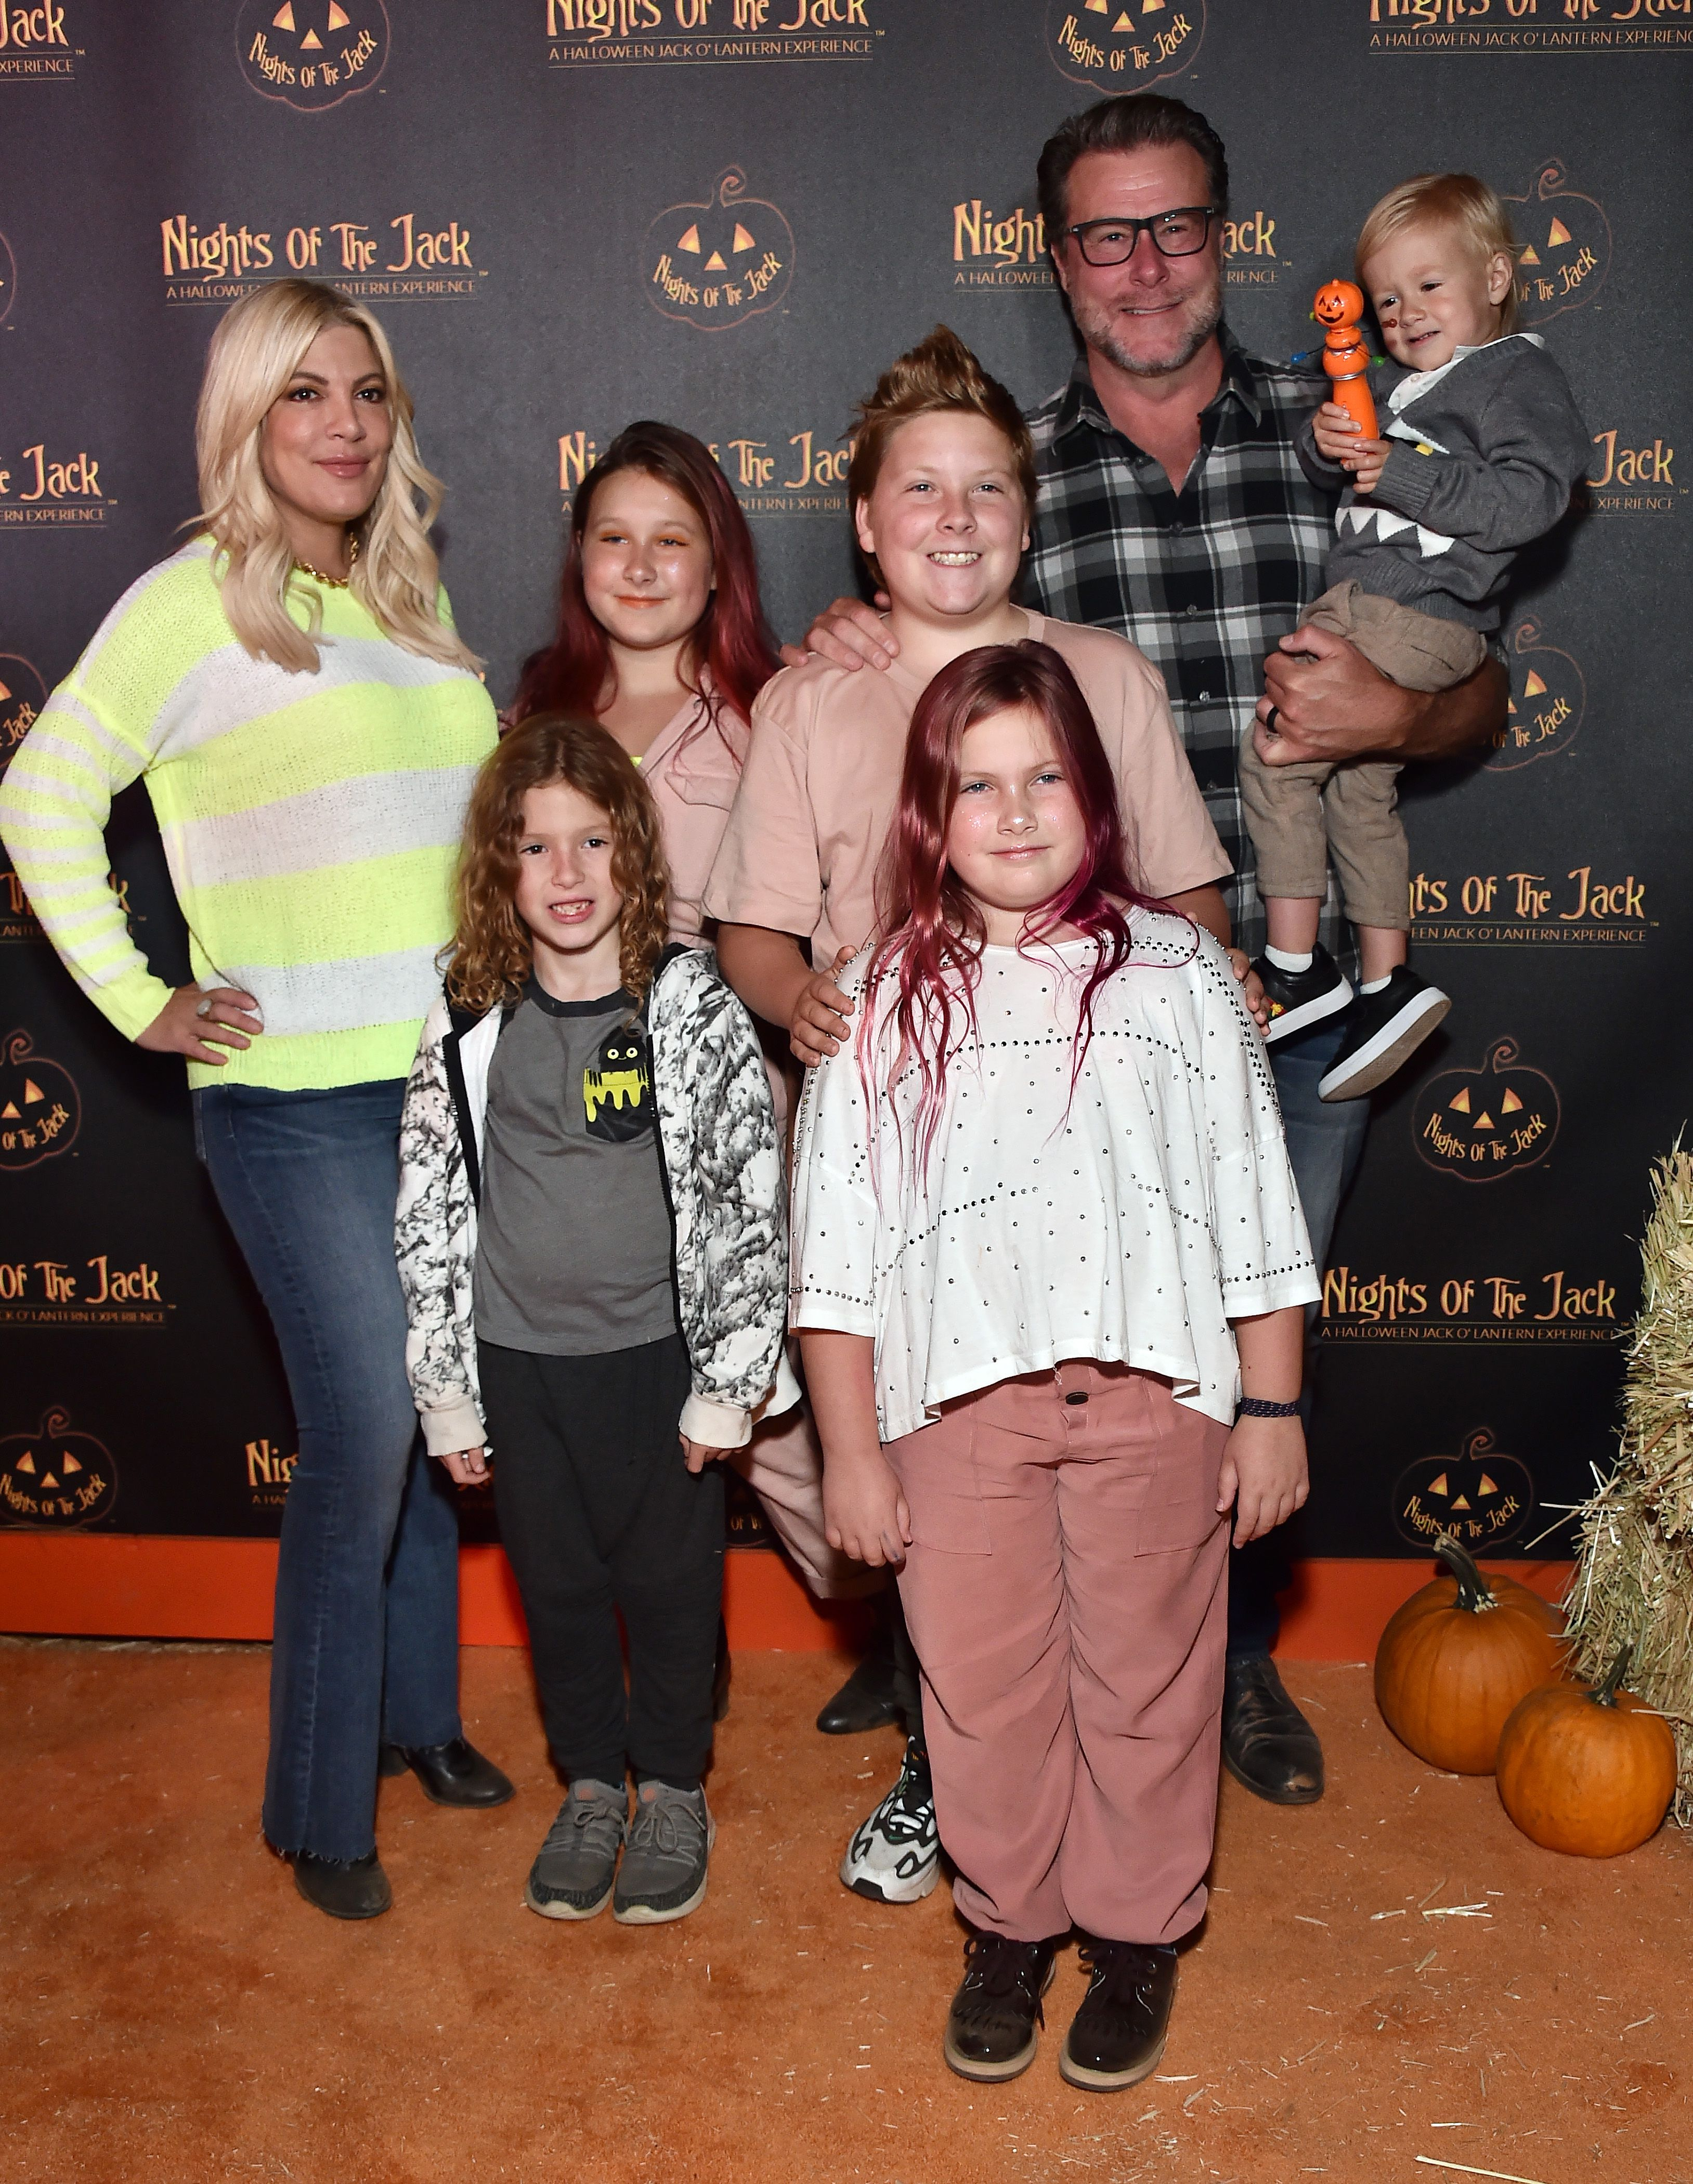 Tori Spelling Gushes Over Halloween Festivities With Her 5 Kids: 'I Love to Dress Up'